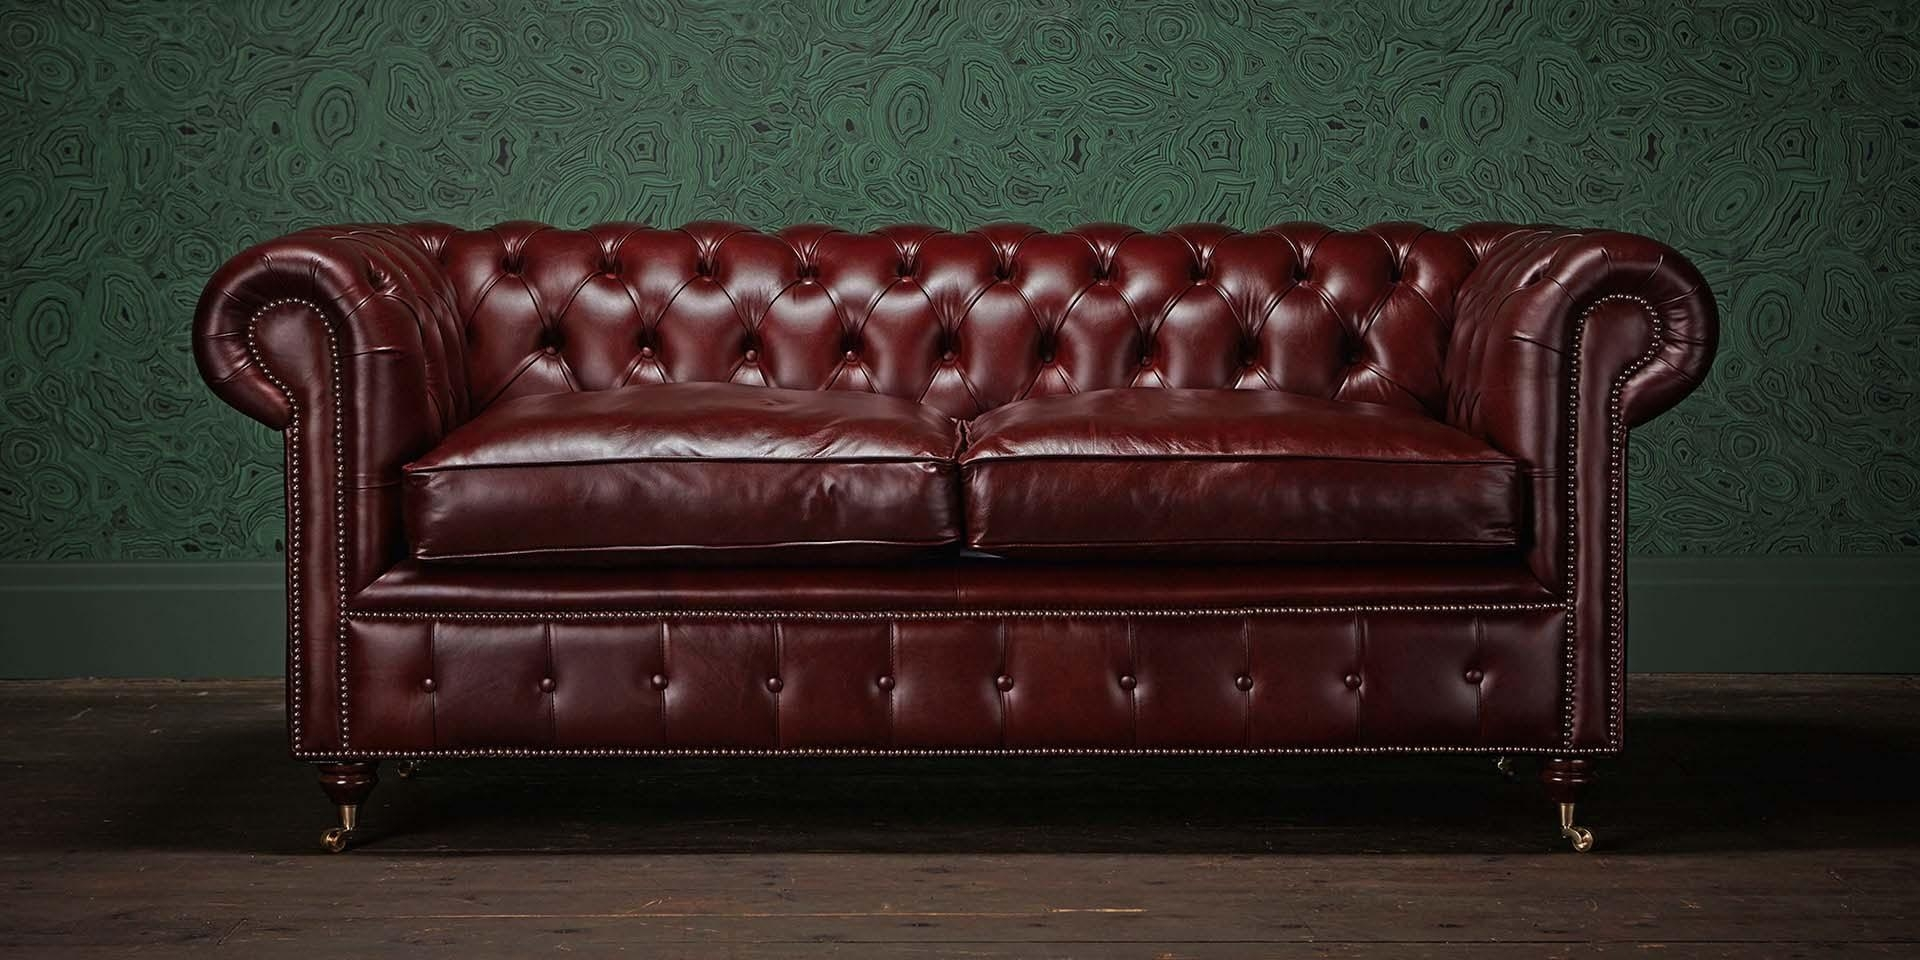 Chesterfields Of England | The Original Chesterfield Company Pertaining To Chesterfield Sofas And Chairs (View 7 of 20)